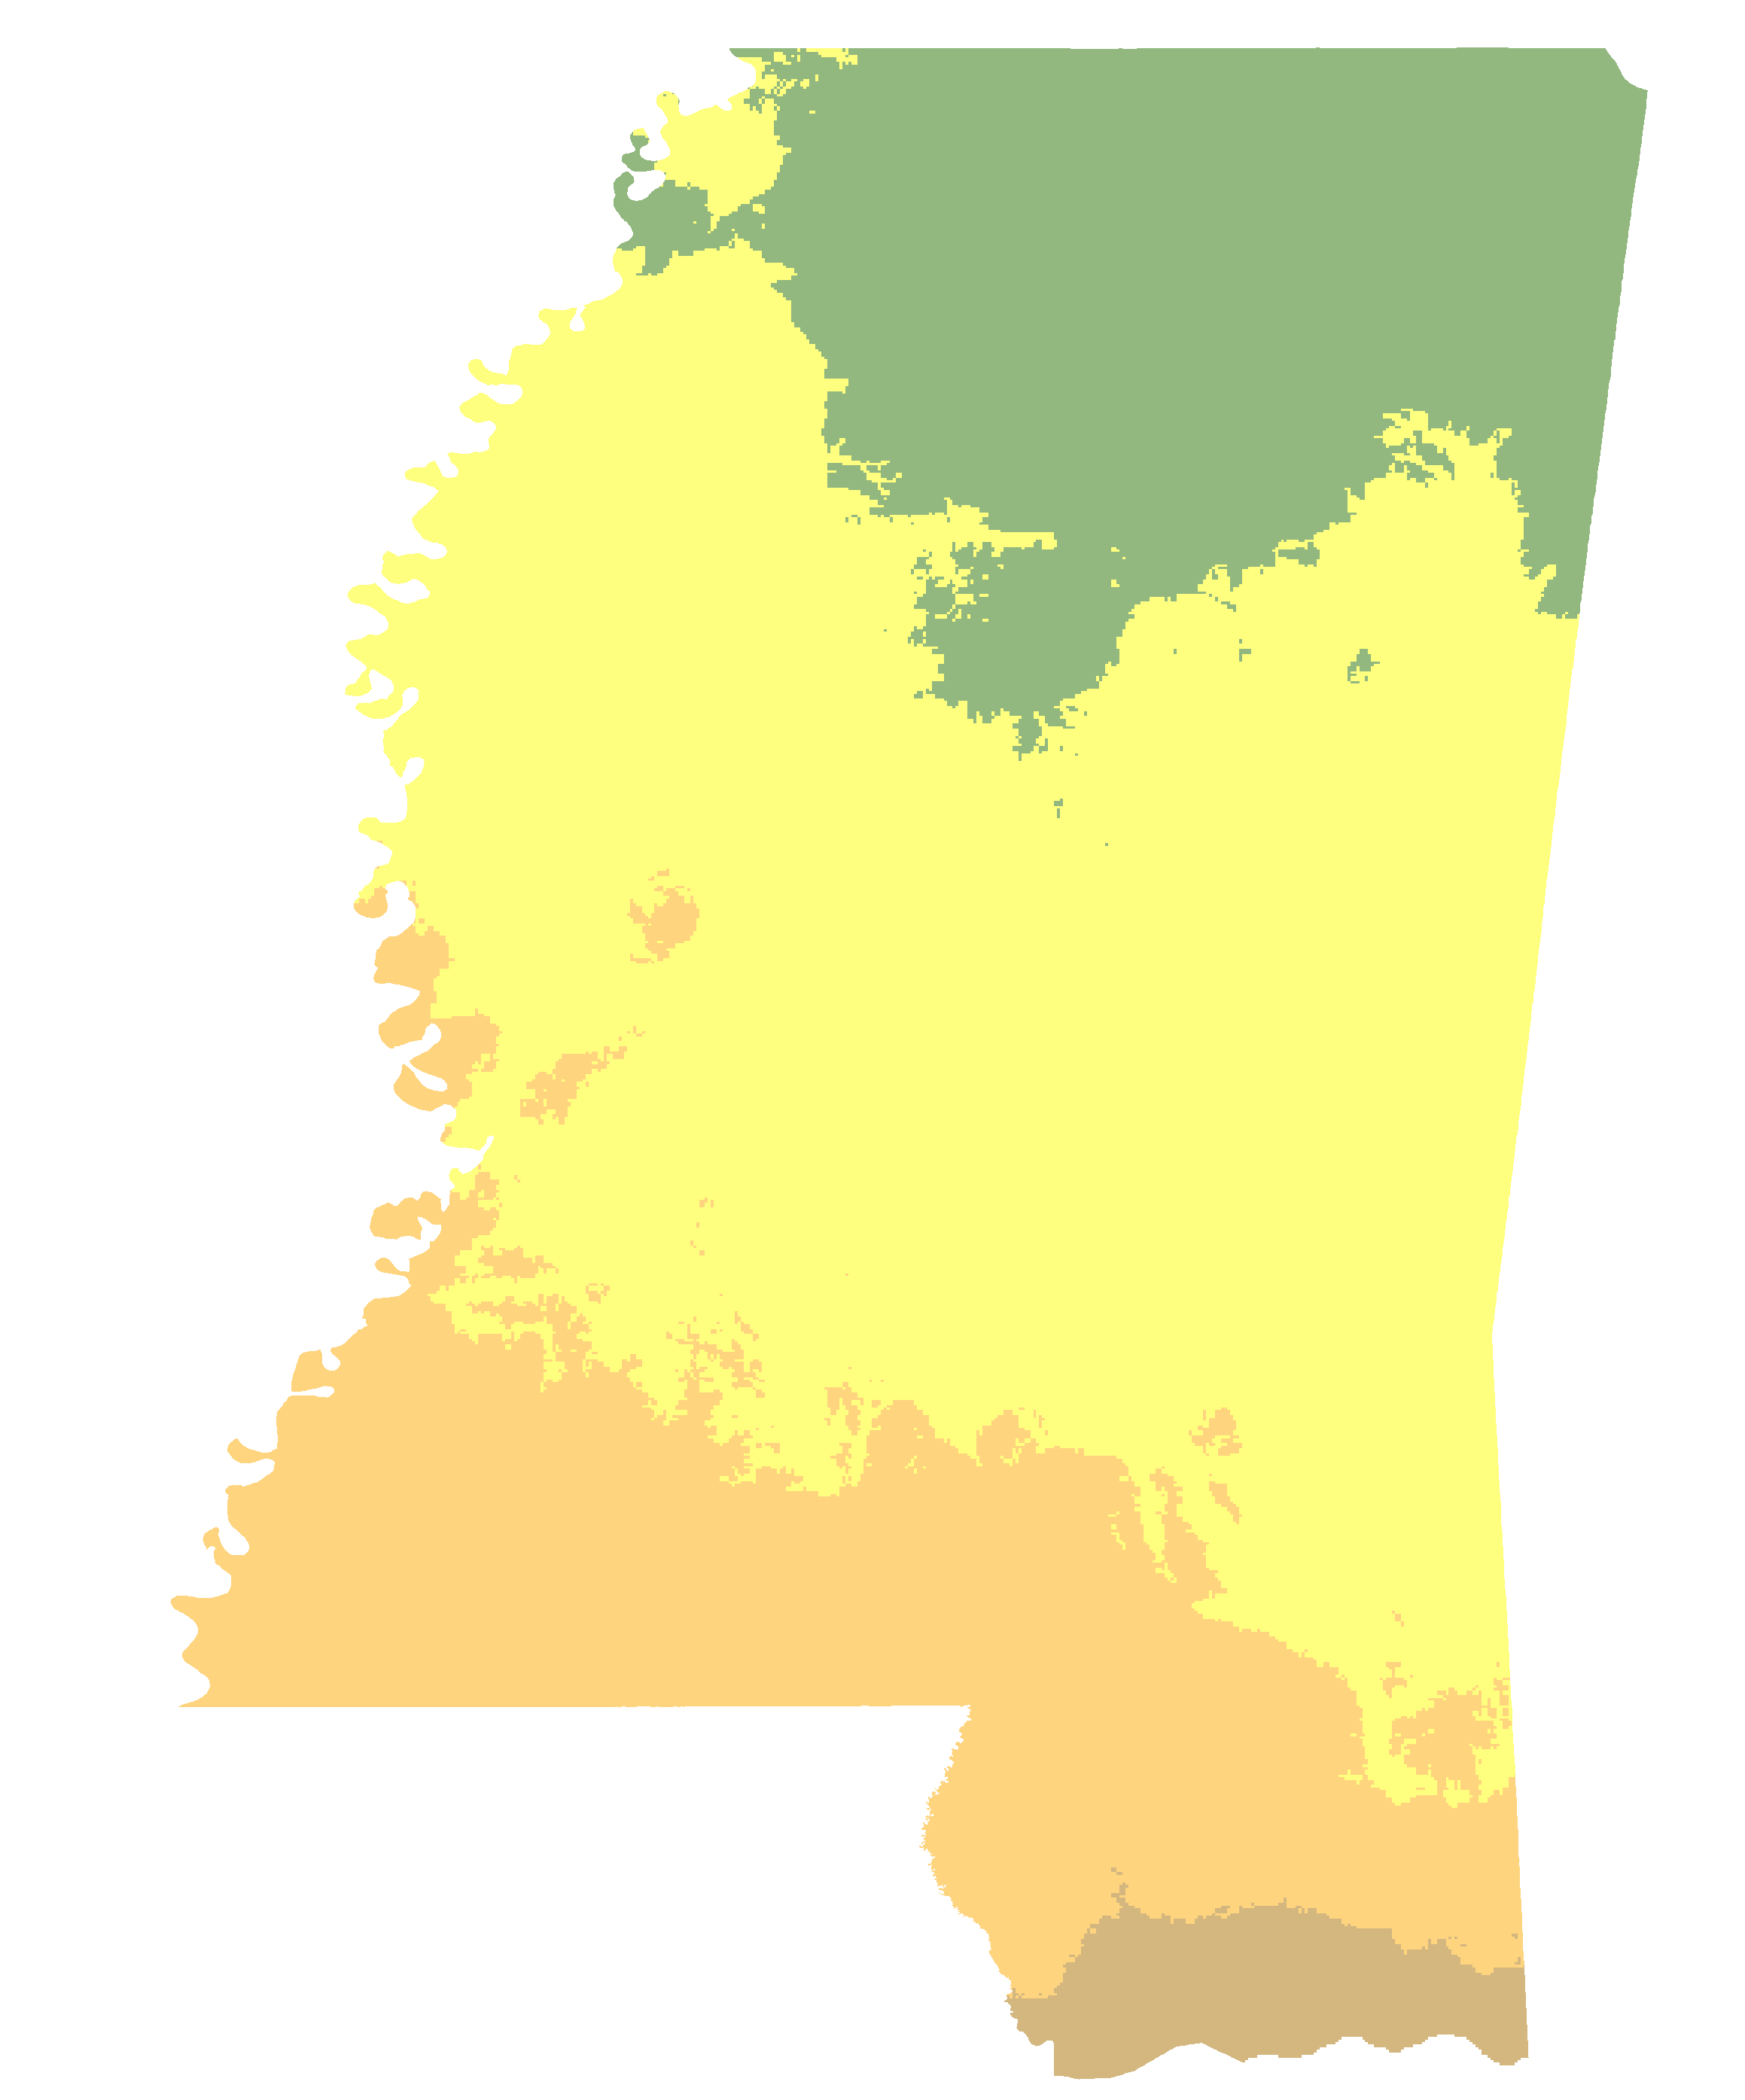 Mississippi george county - George County Mississippi Is In Usda Hardiness Zones 8a And 8b